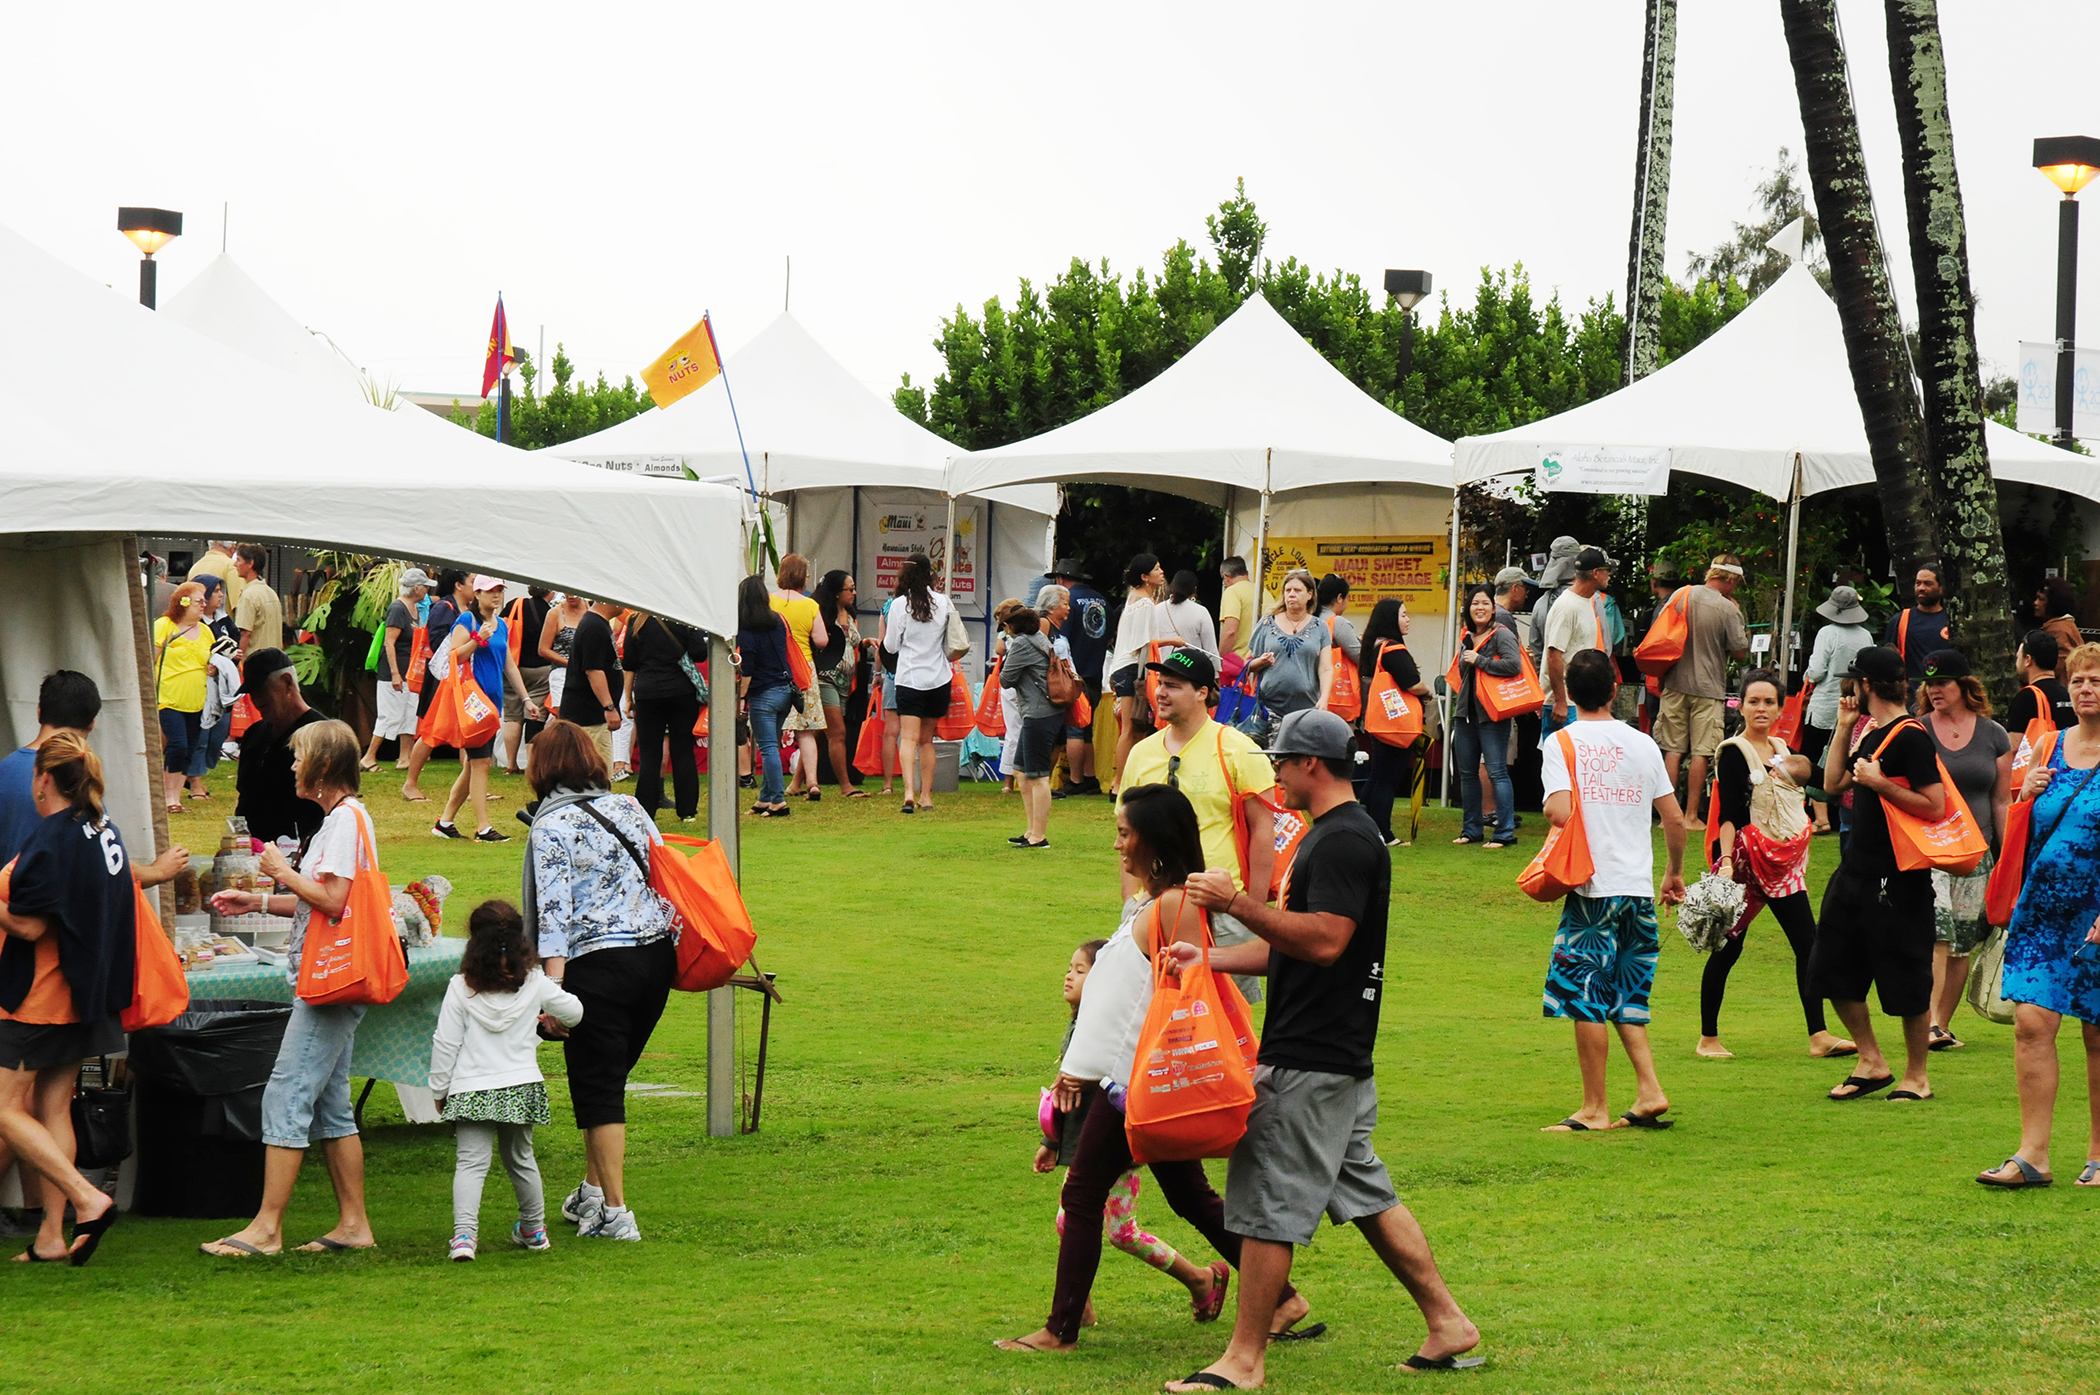 Despite a steady downpour of rain, the inaugural Made in Maui County Festival in 2014 still managed to attract over 9,400 residents and visitors for a full day of shopping.